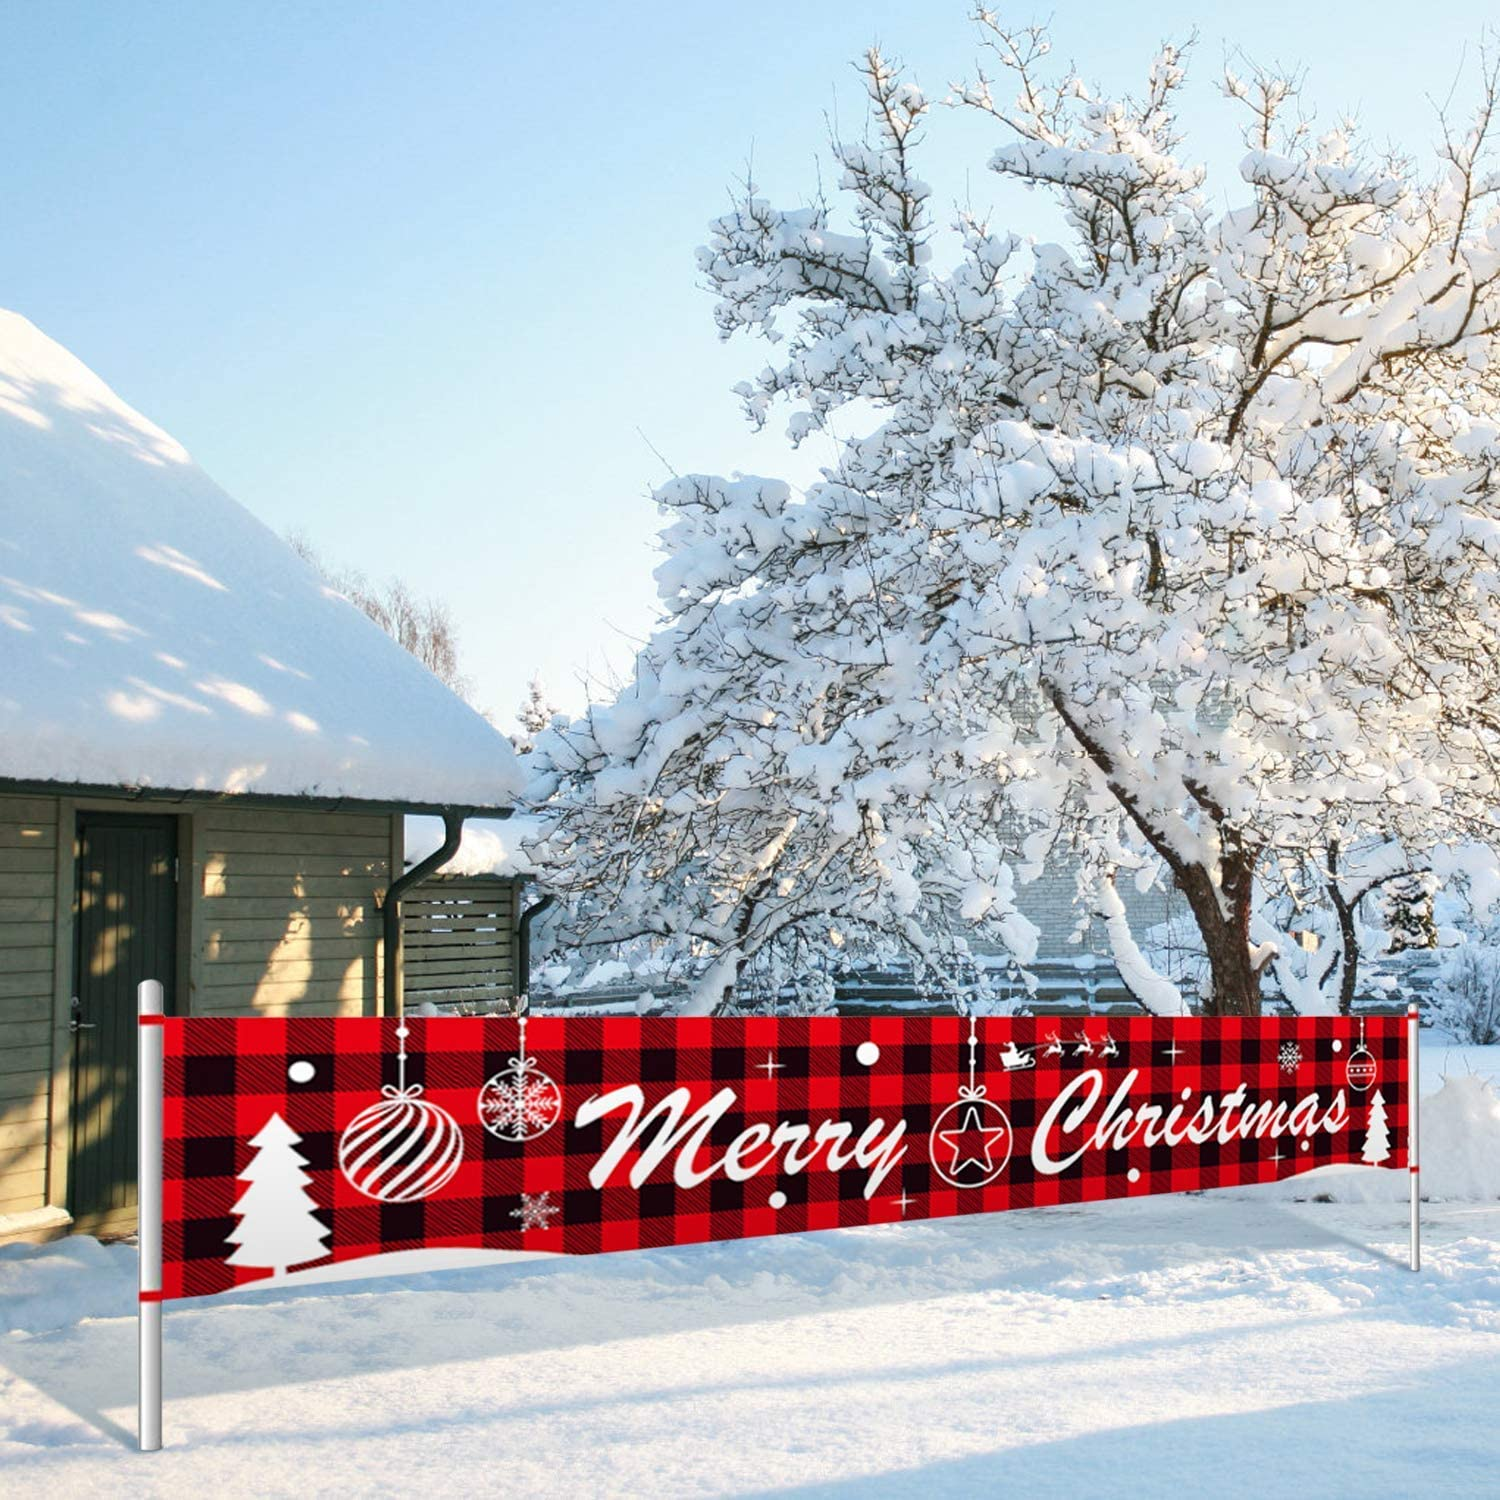 Insuwun Large Merry Christmas Banner Outdoor /& Indoor Christmas Banner Decorations with Christmas Tree Balloon Pattern for Christmas Holidays House Home Party Decor Supplies 9.8 x 1.6 FT